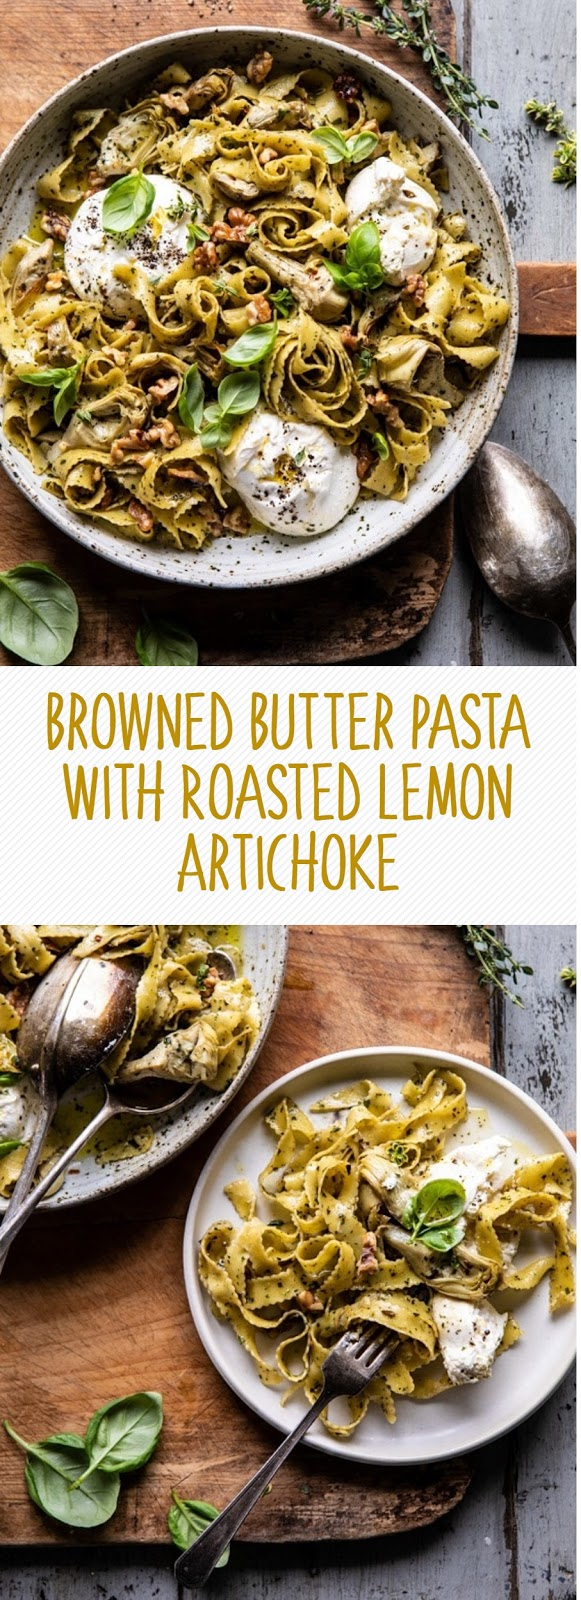 Browned Butter Pasta With Roasted Lemon Artichoke